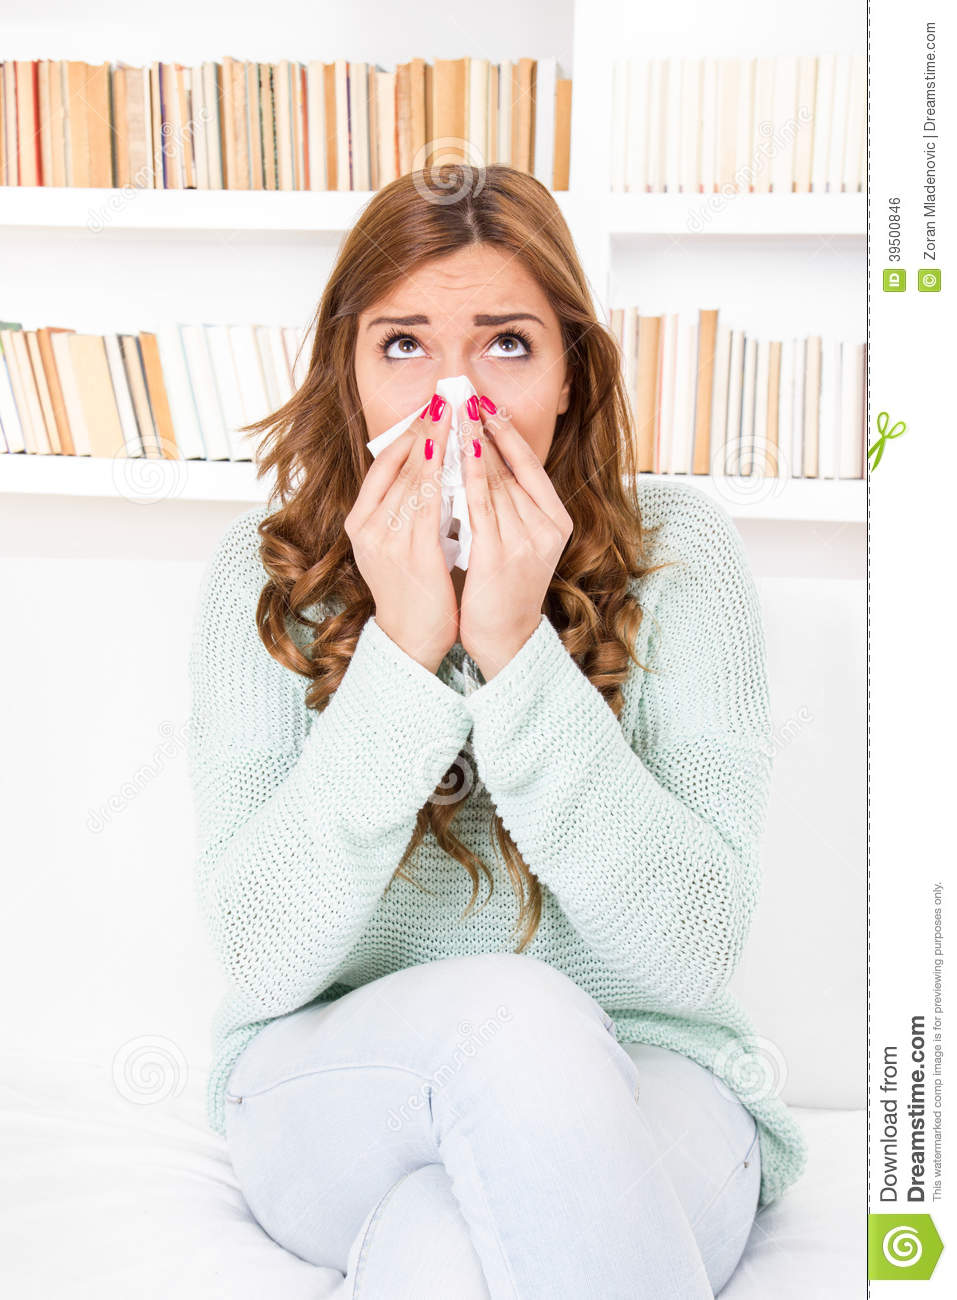 Sick woman caught cold blowing her nose into handkerchief